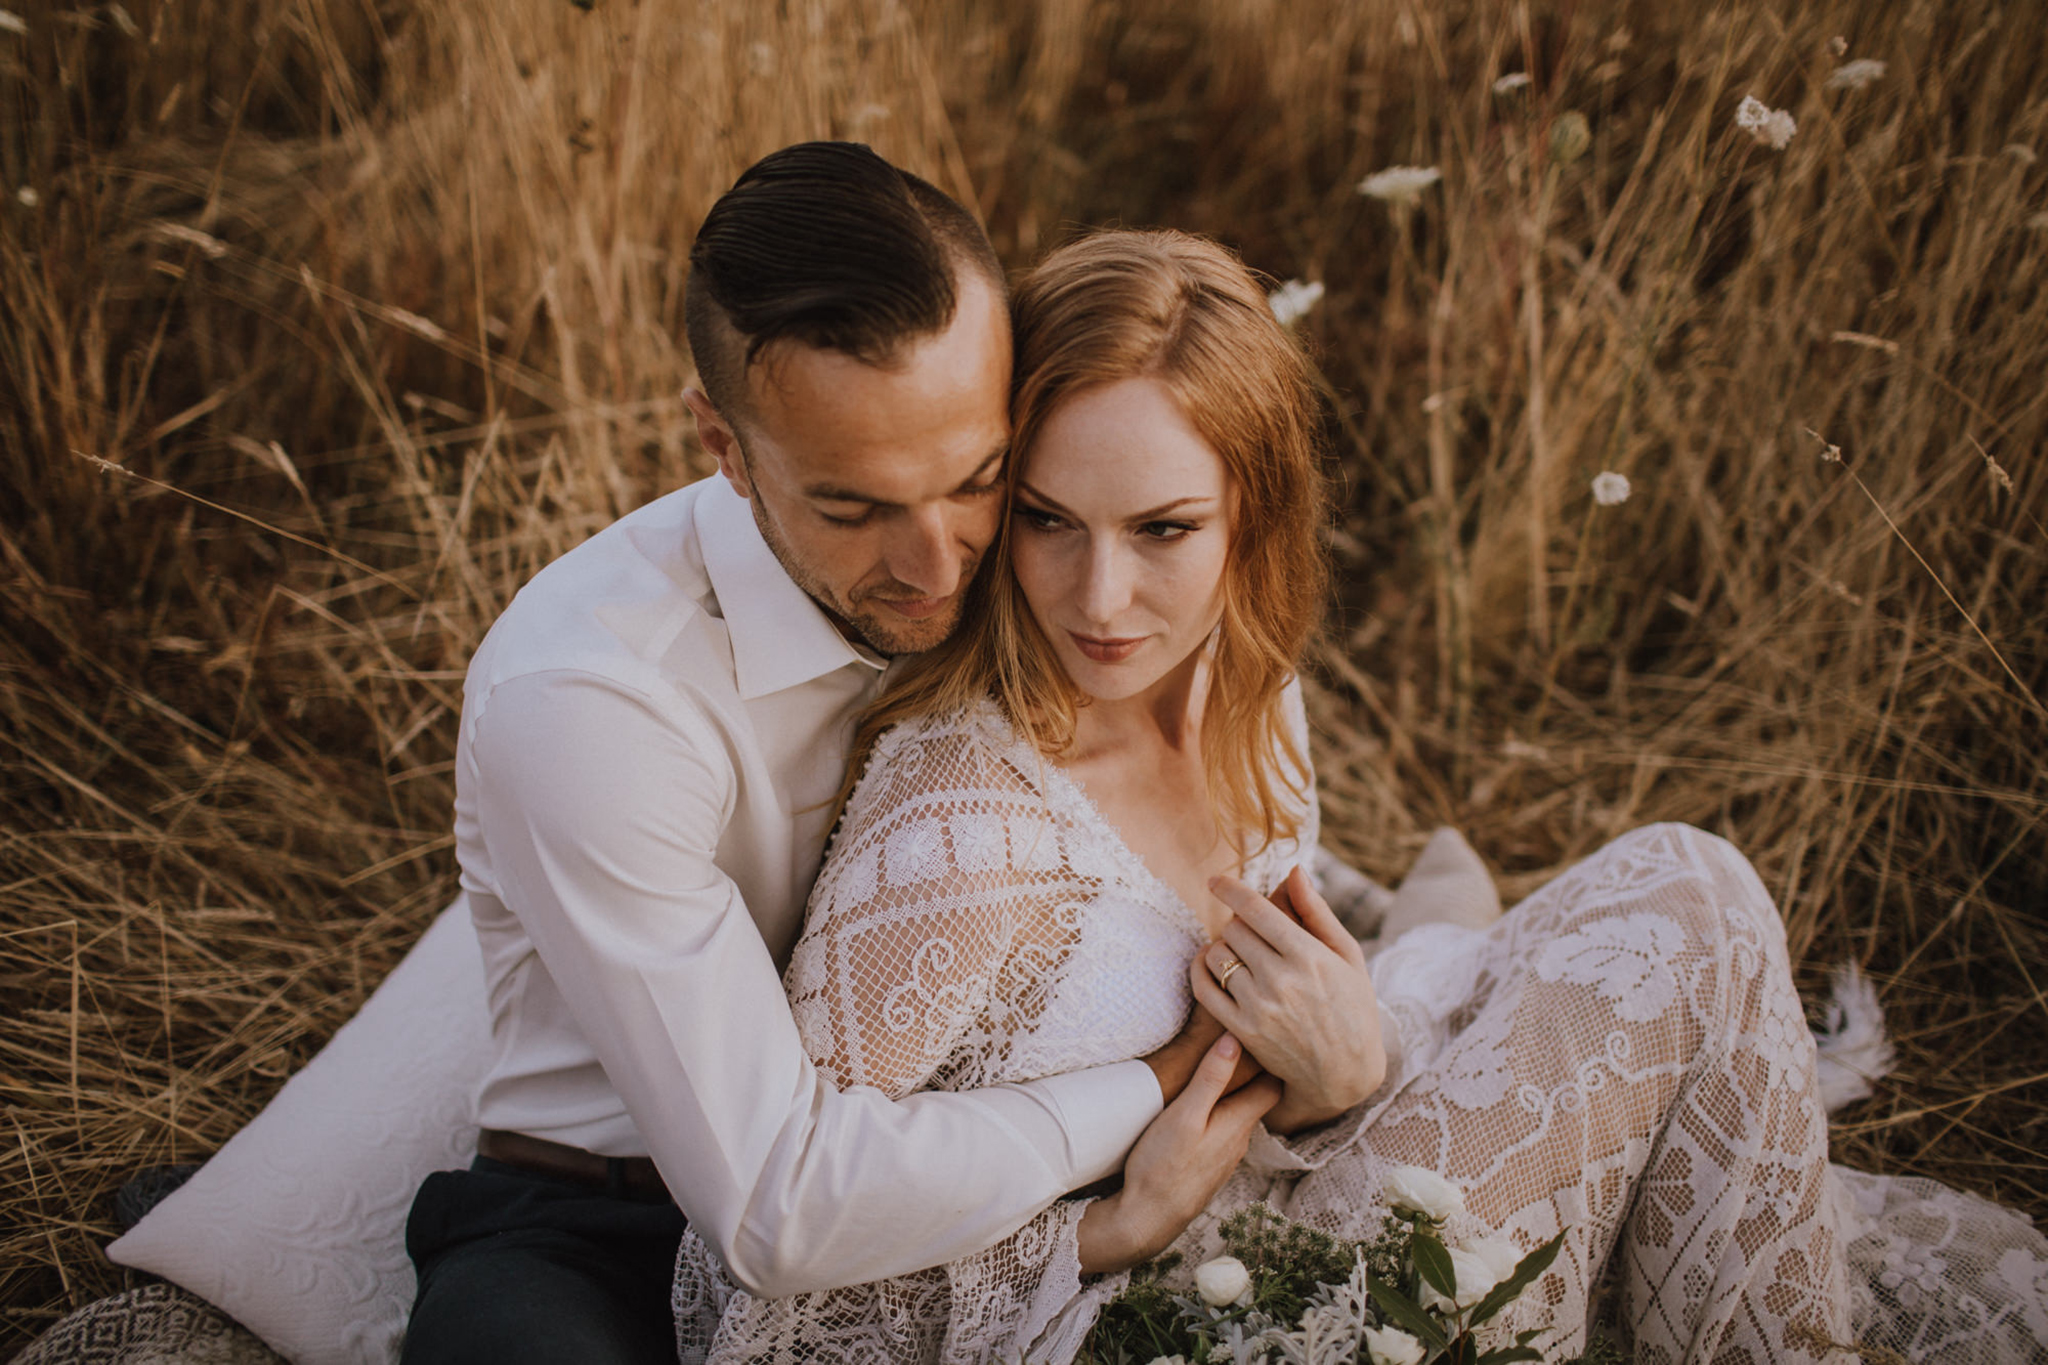 Myrtle and Moss Photography Styled Sunset Elopement / wedding, Victoria BC, Victoria Wedding Photographer